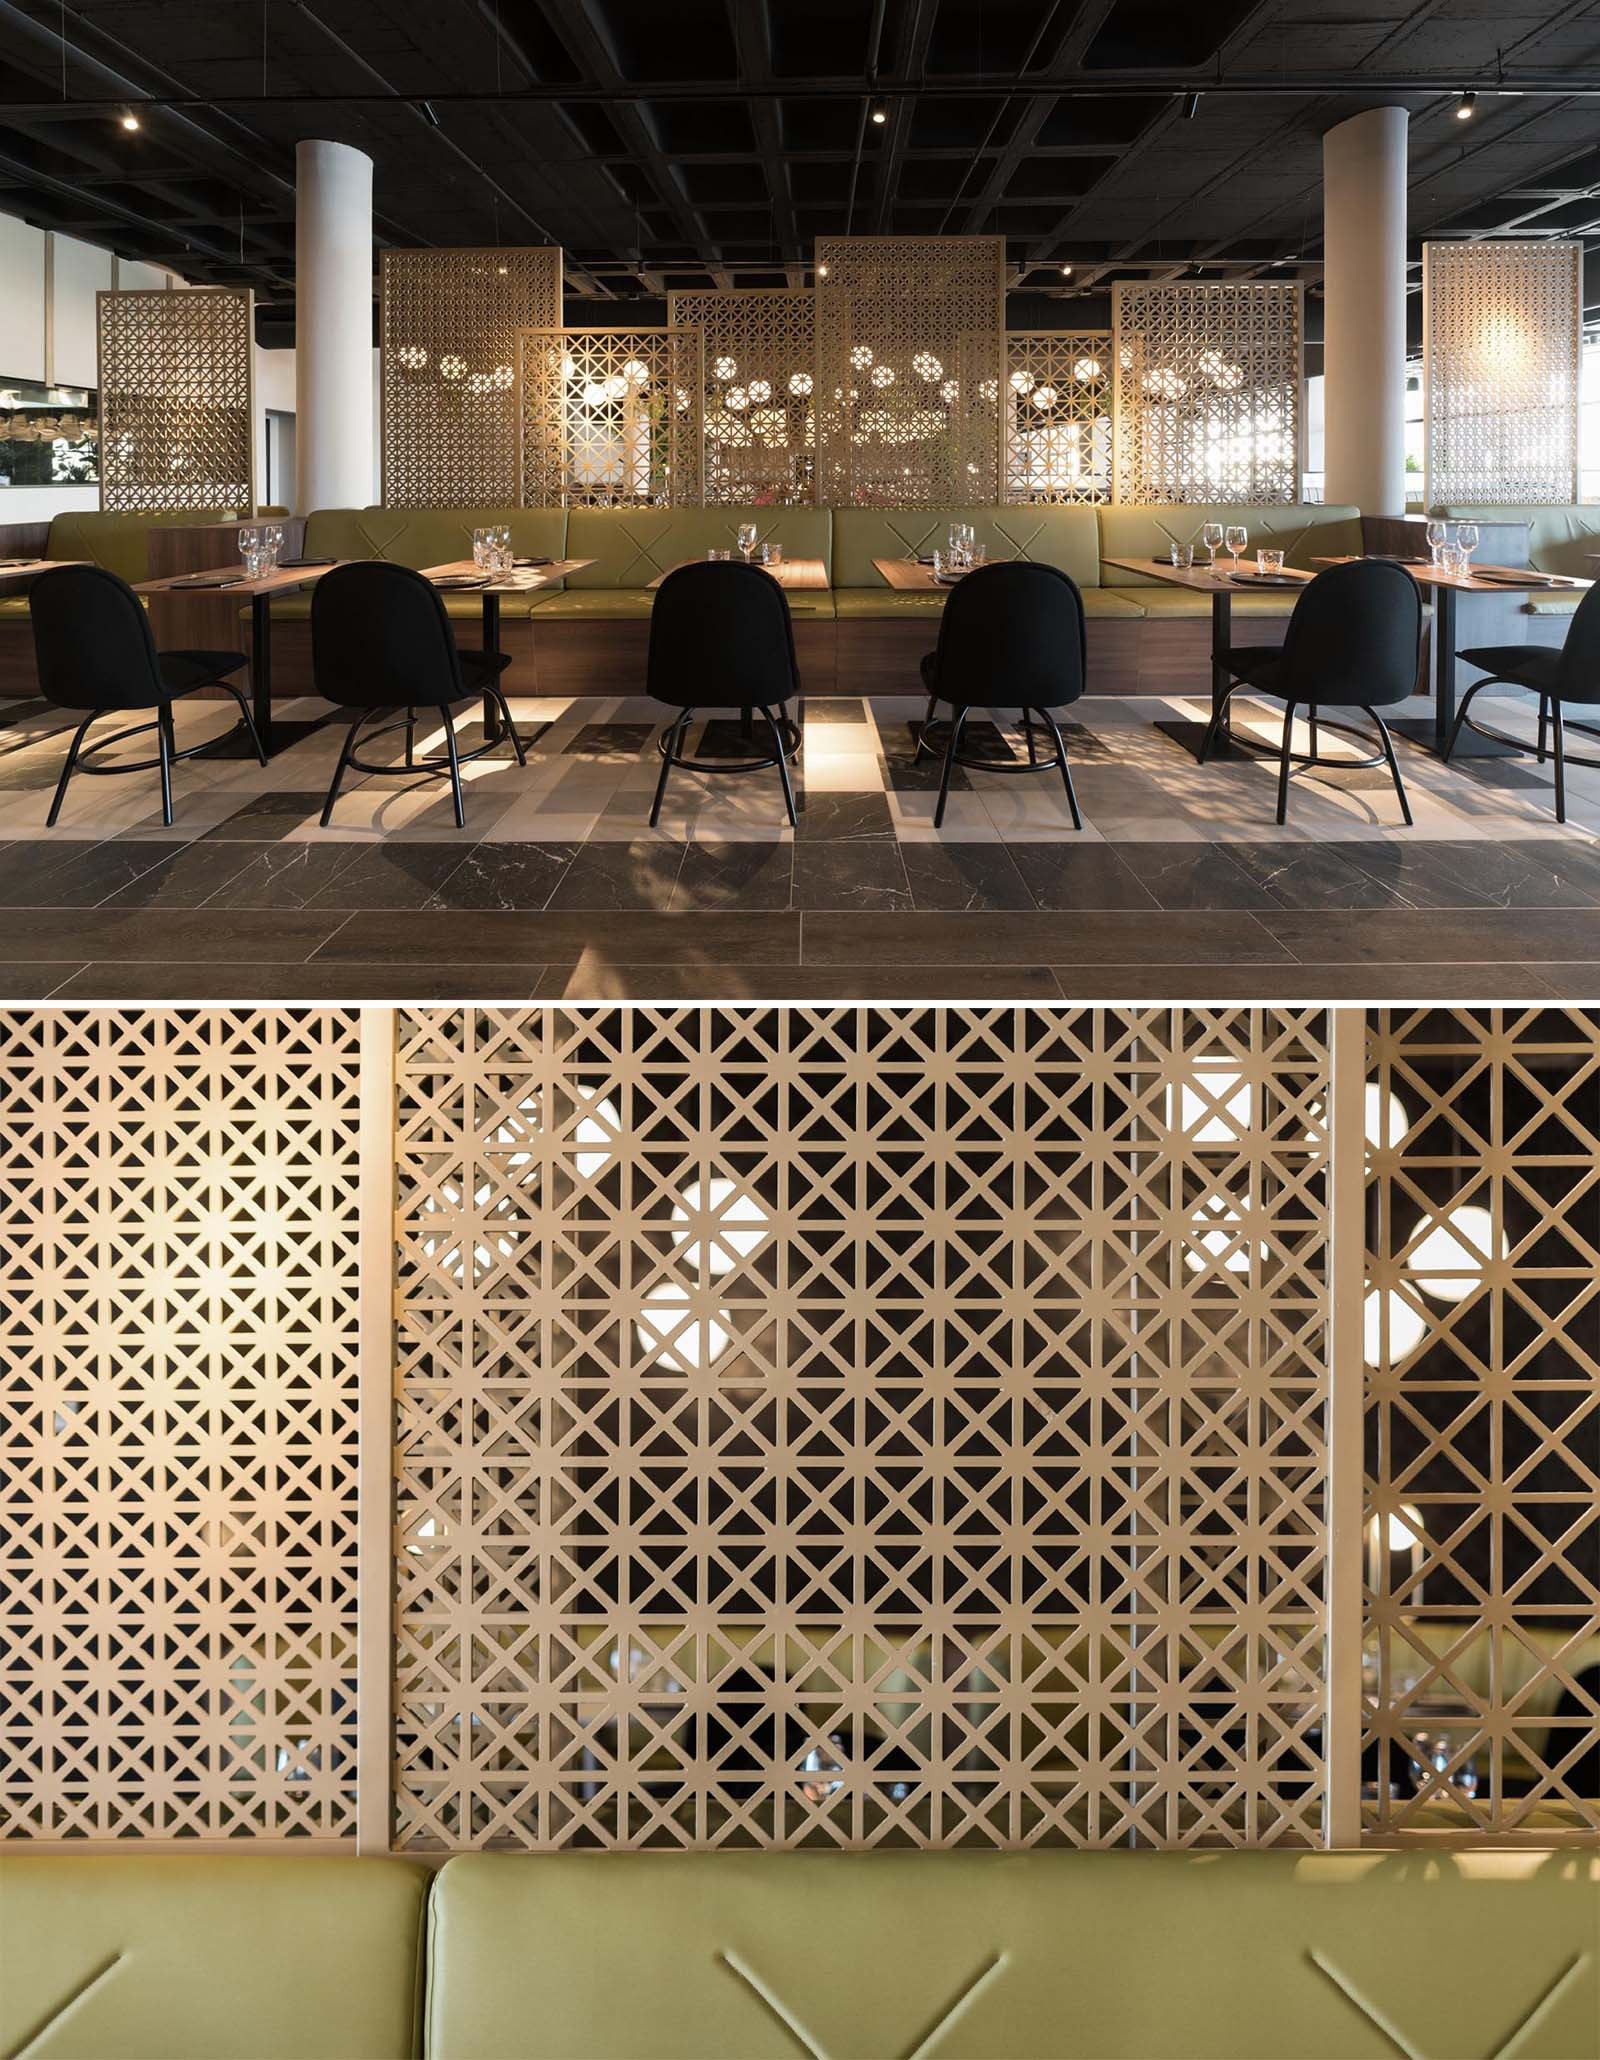 A modern restaurant with greenery, multiple seating areas, patterned wood screens, and plenty of lighting.